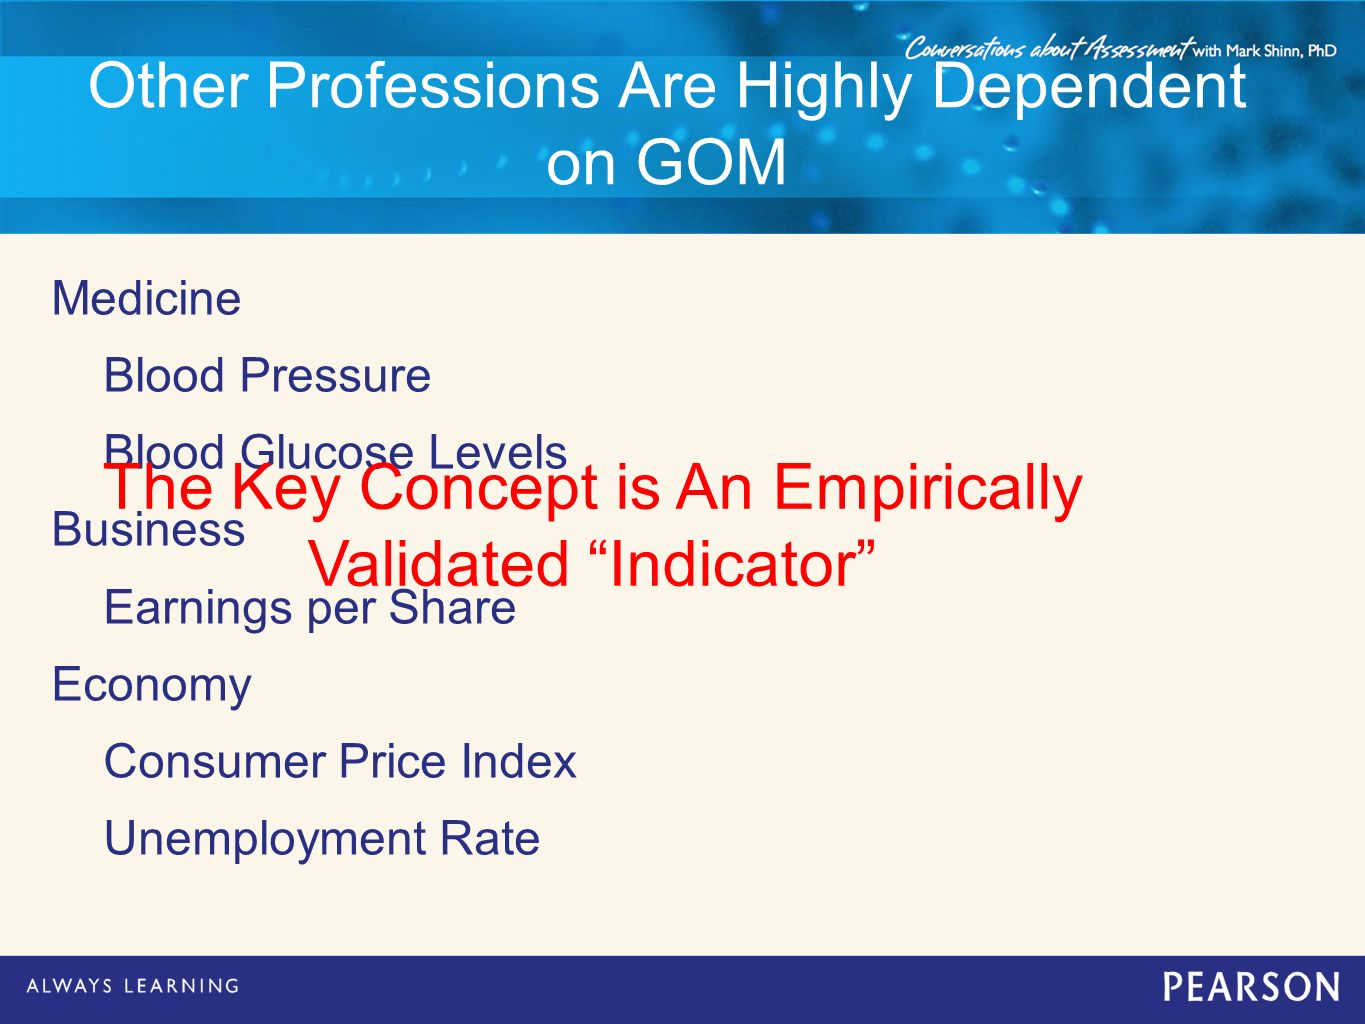 Other Professions Are Highly Dependent on GOM